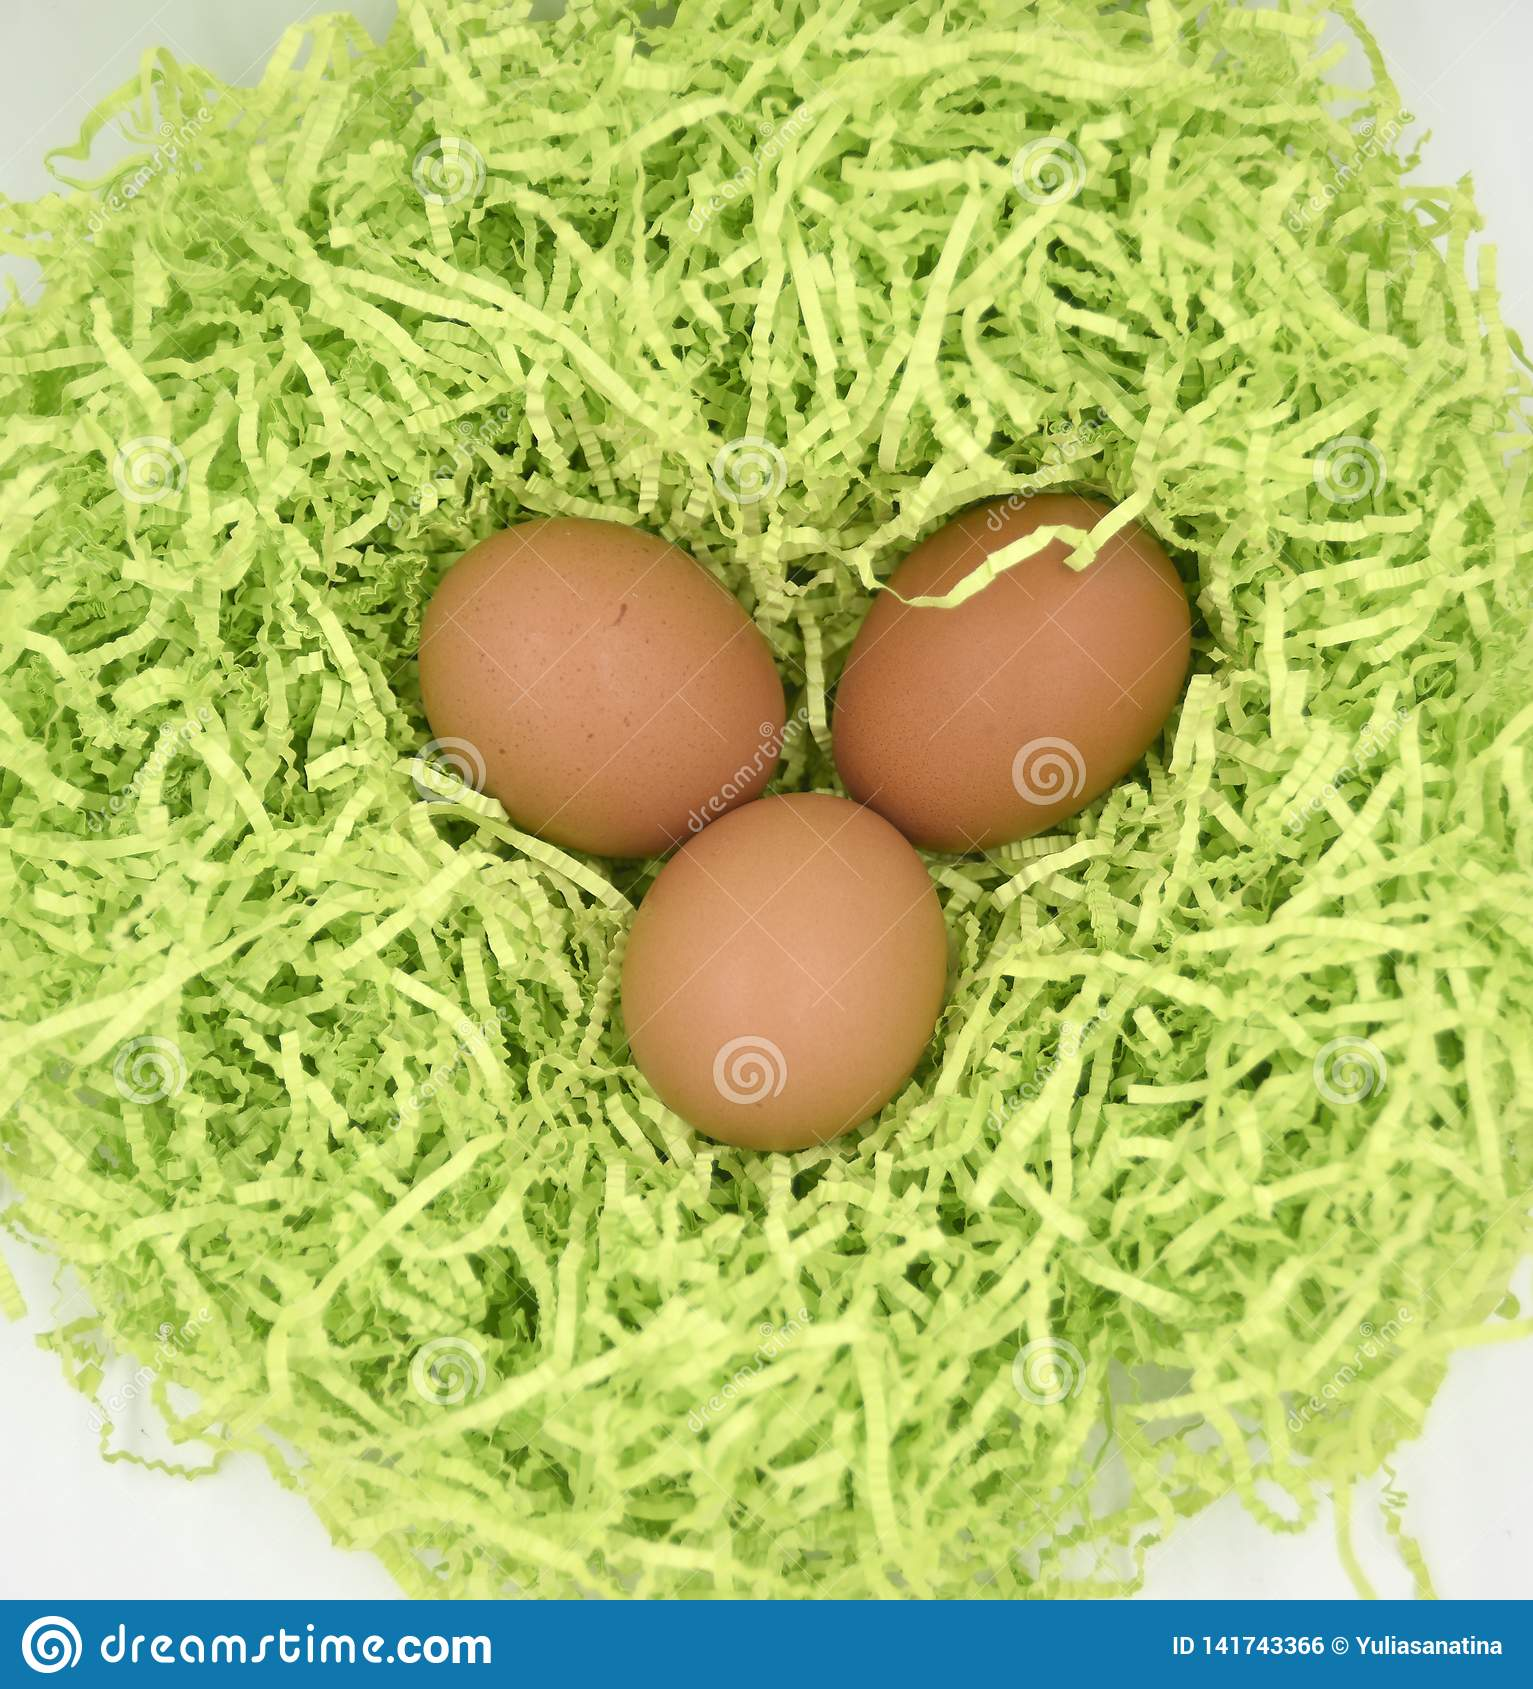 Brown eggs in the green nest made of crumpled paper ob the white background